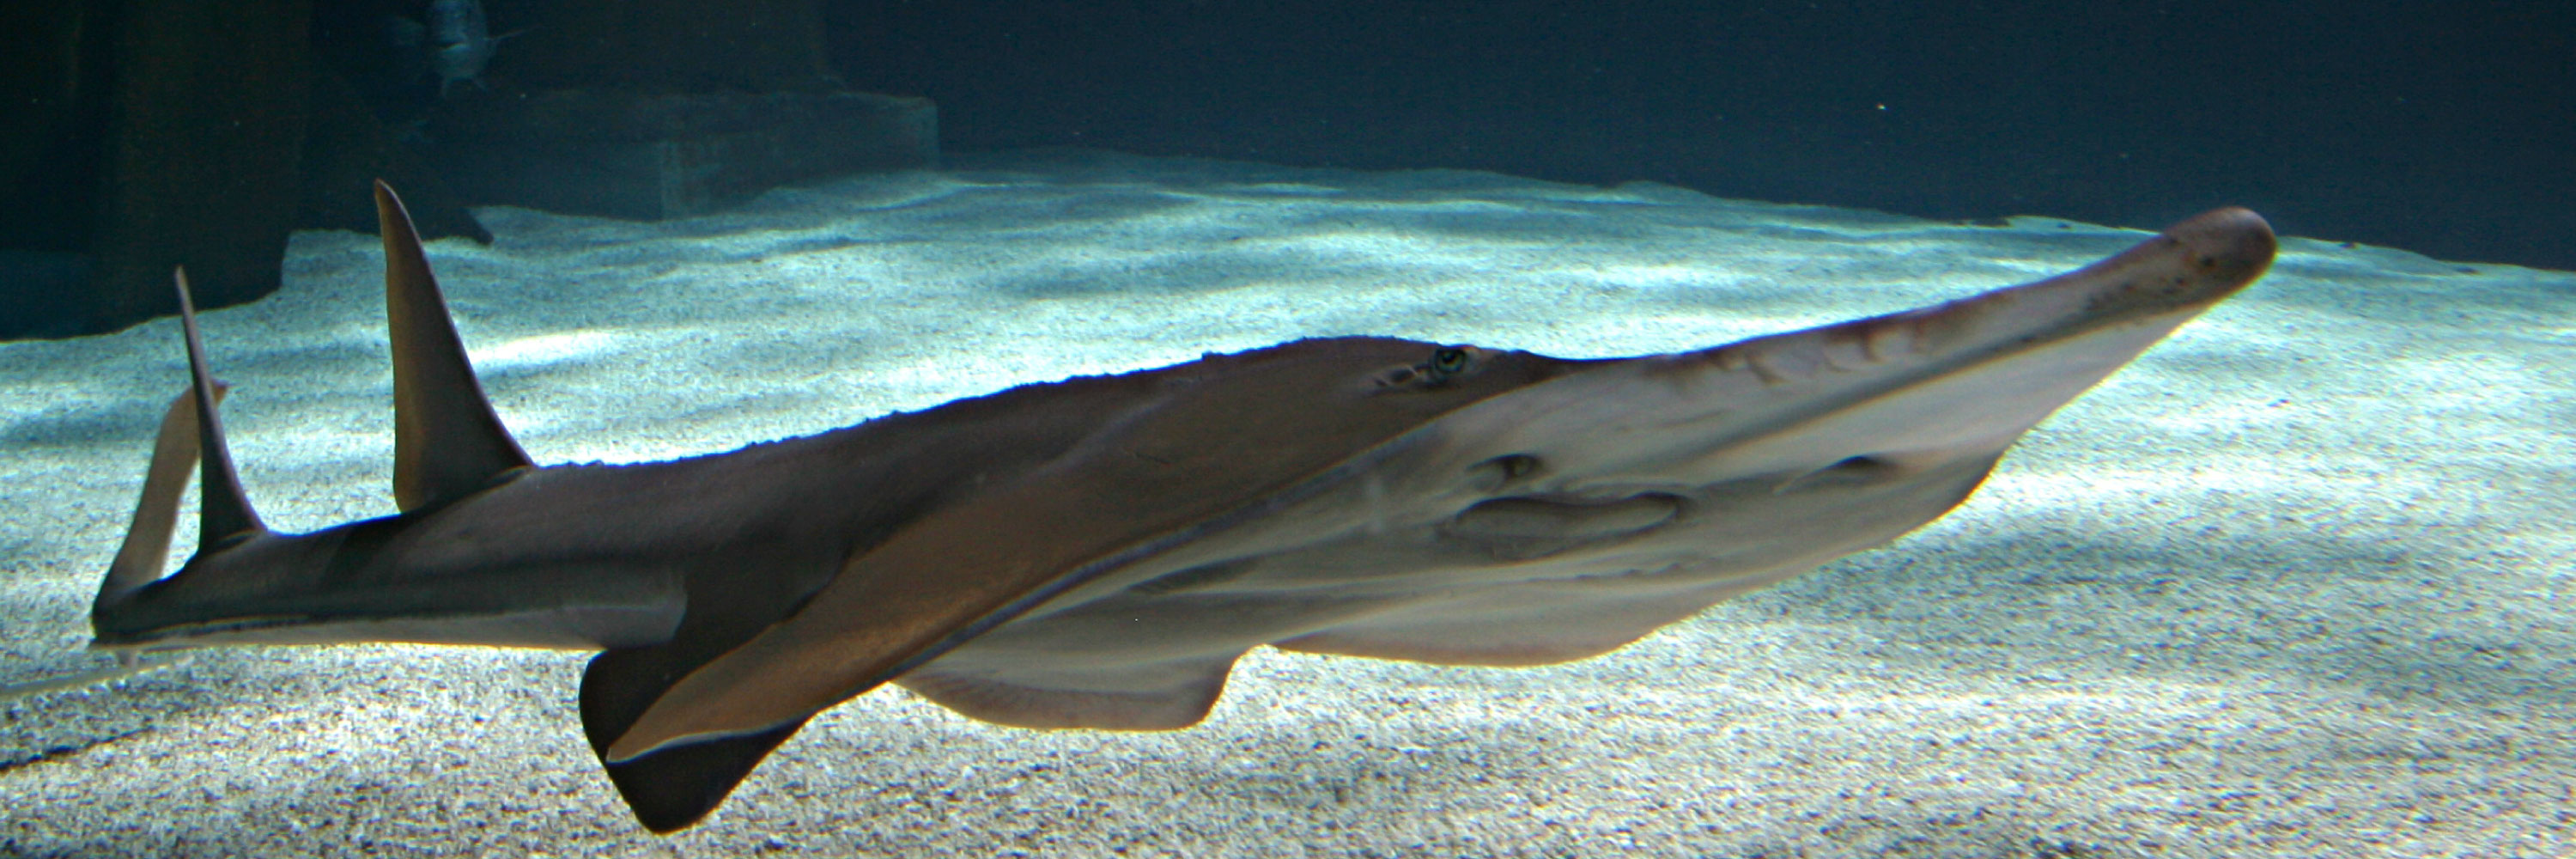 Guitarshark at SEA LIFE Aquarium